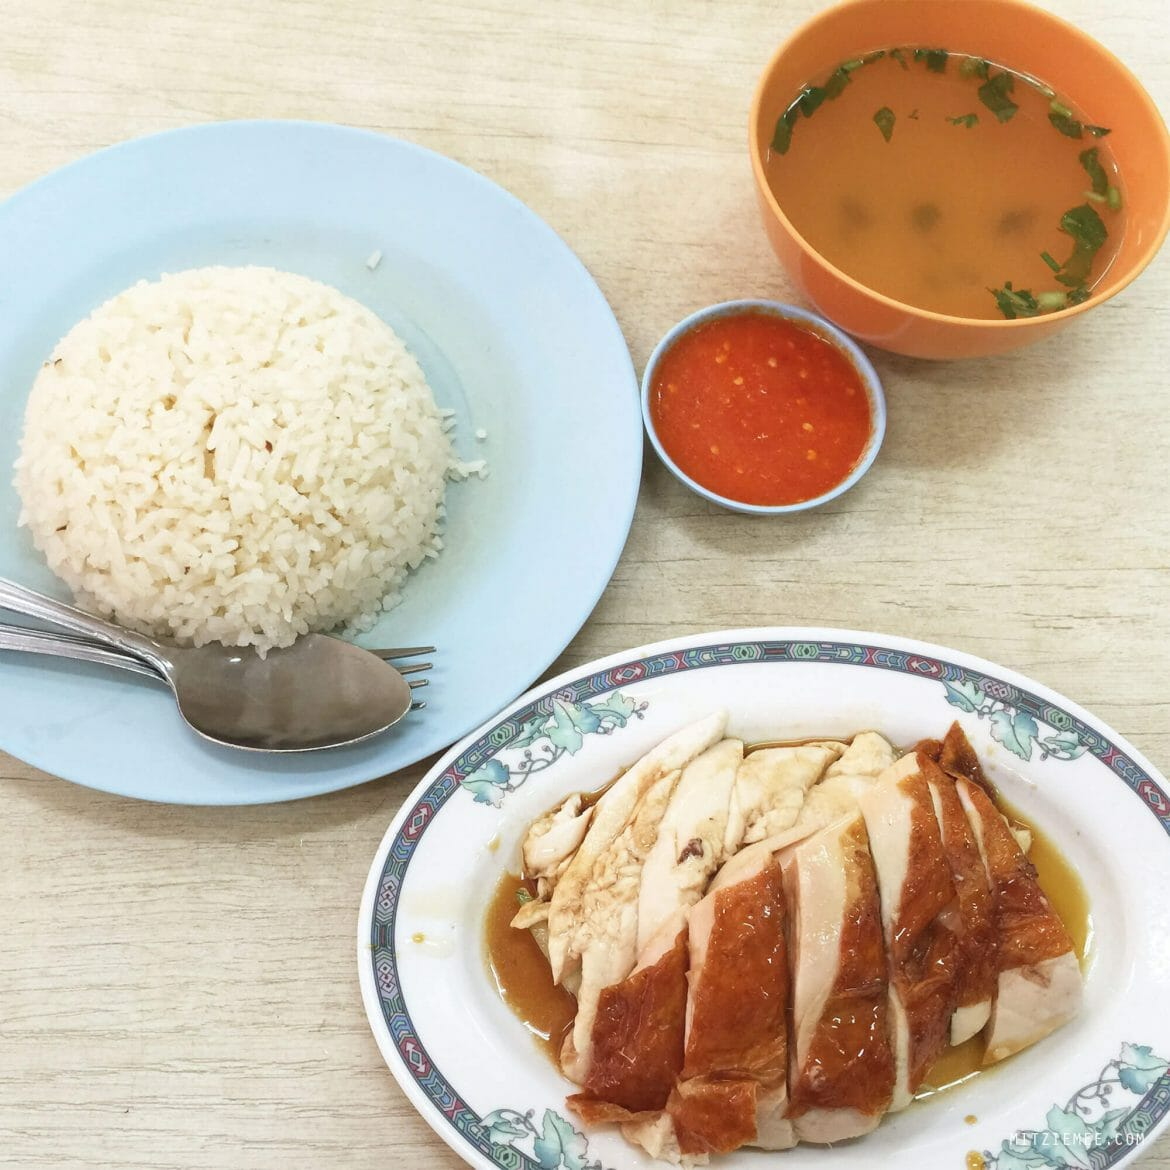 Leong Yeow Famous Waterloo Street Hainanese Chicken Rice in Singapore